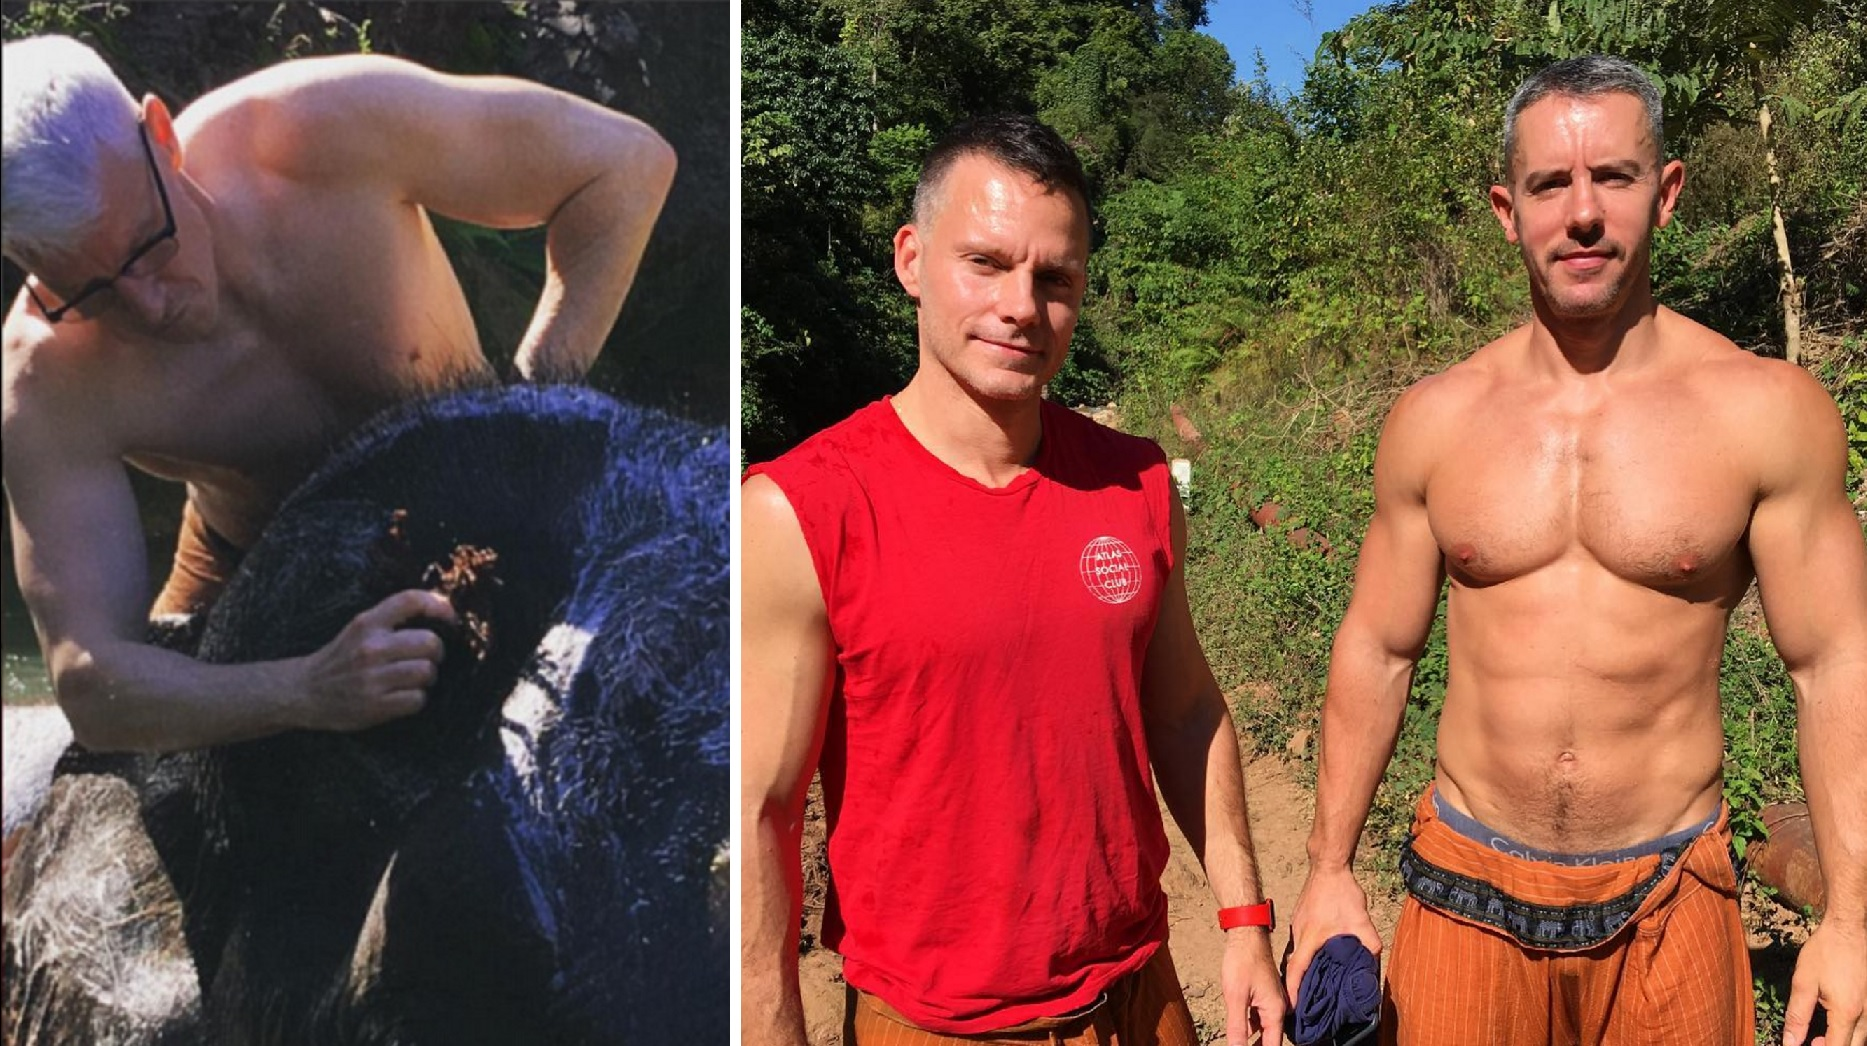 Anderson Cooper Nude Pics anderson cooper strips down to wash rescued elephants, shows